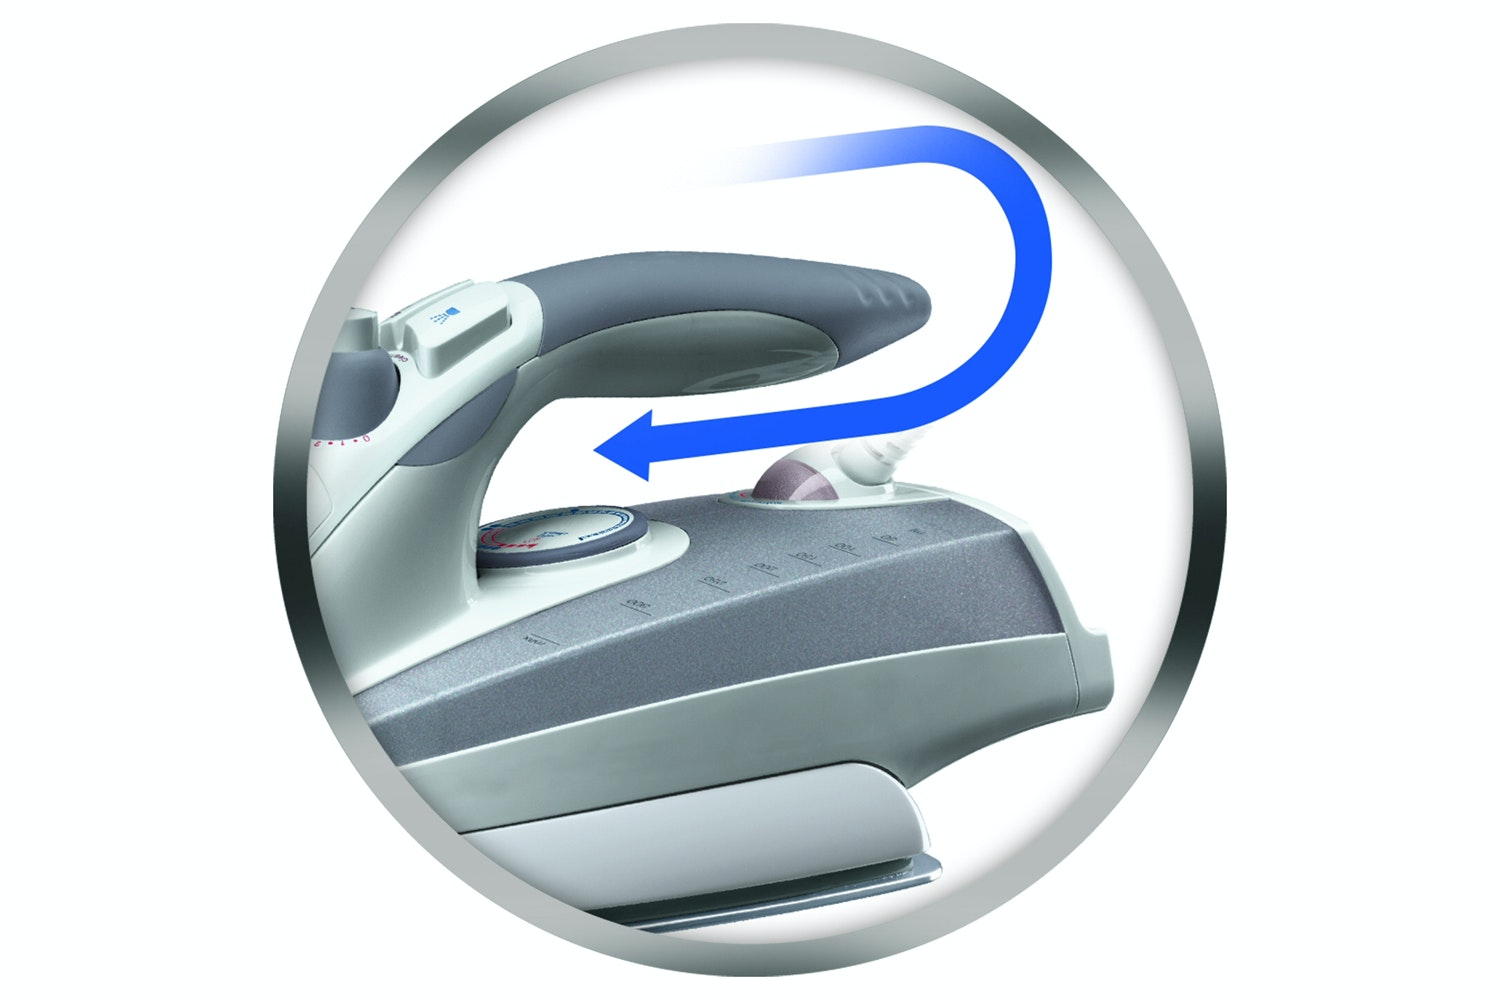 Braun Texstyle 7 Steam Iron | TS765A